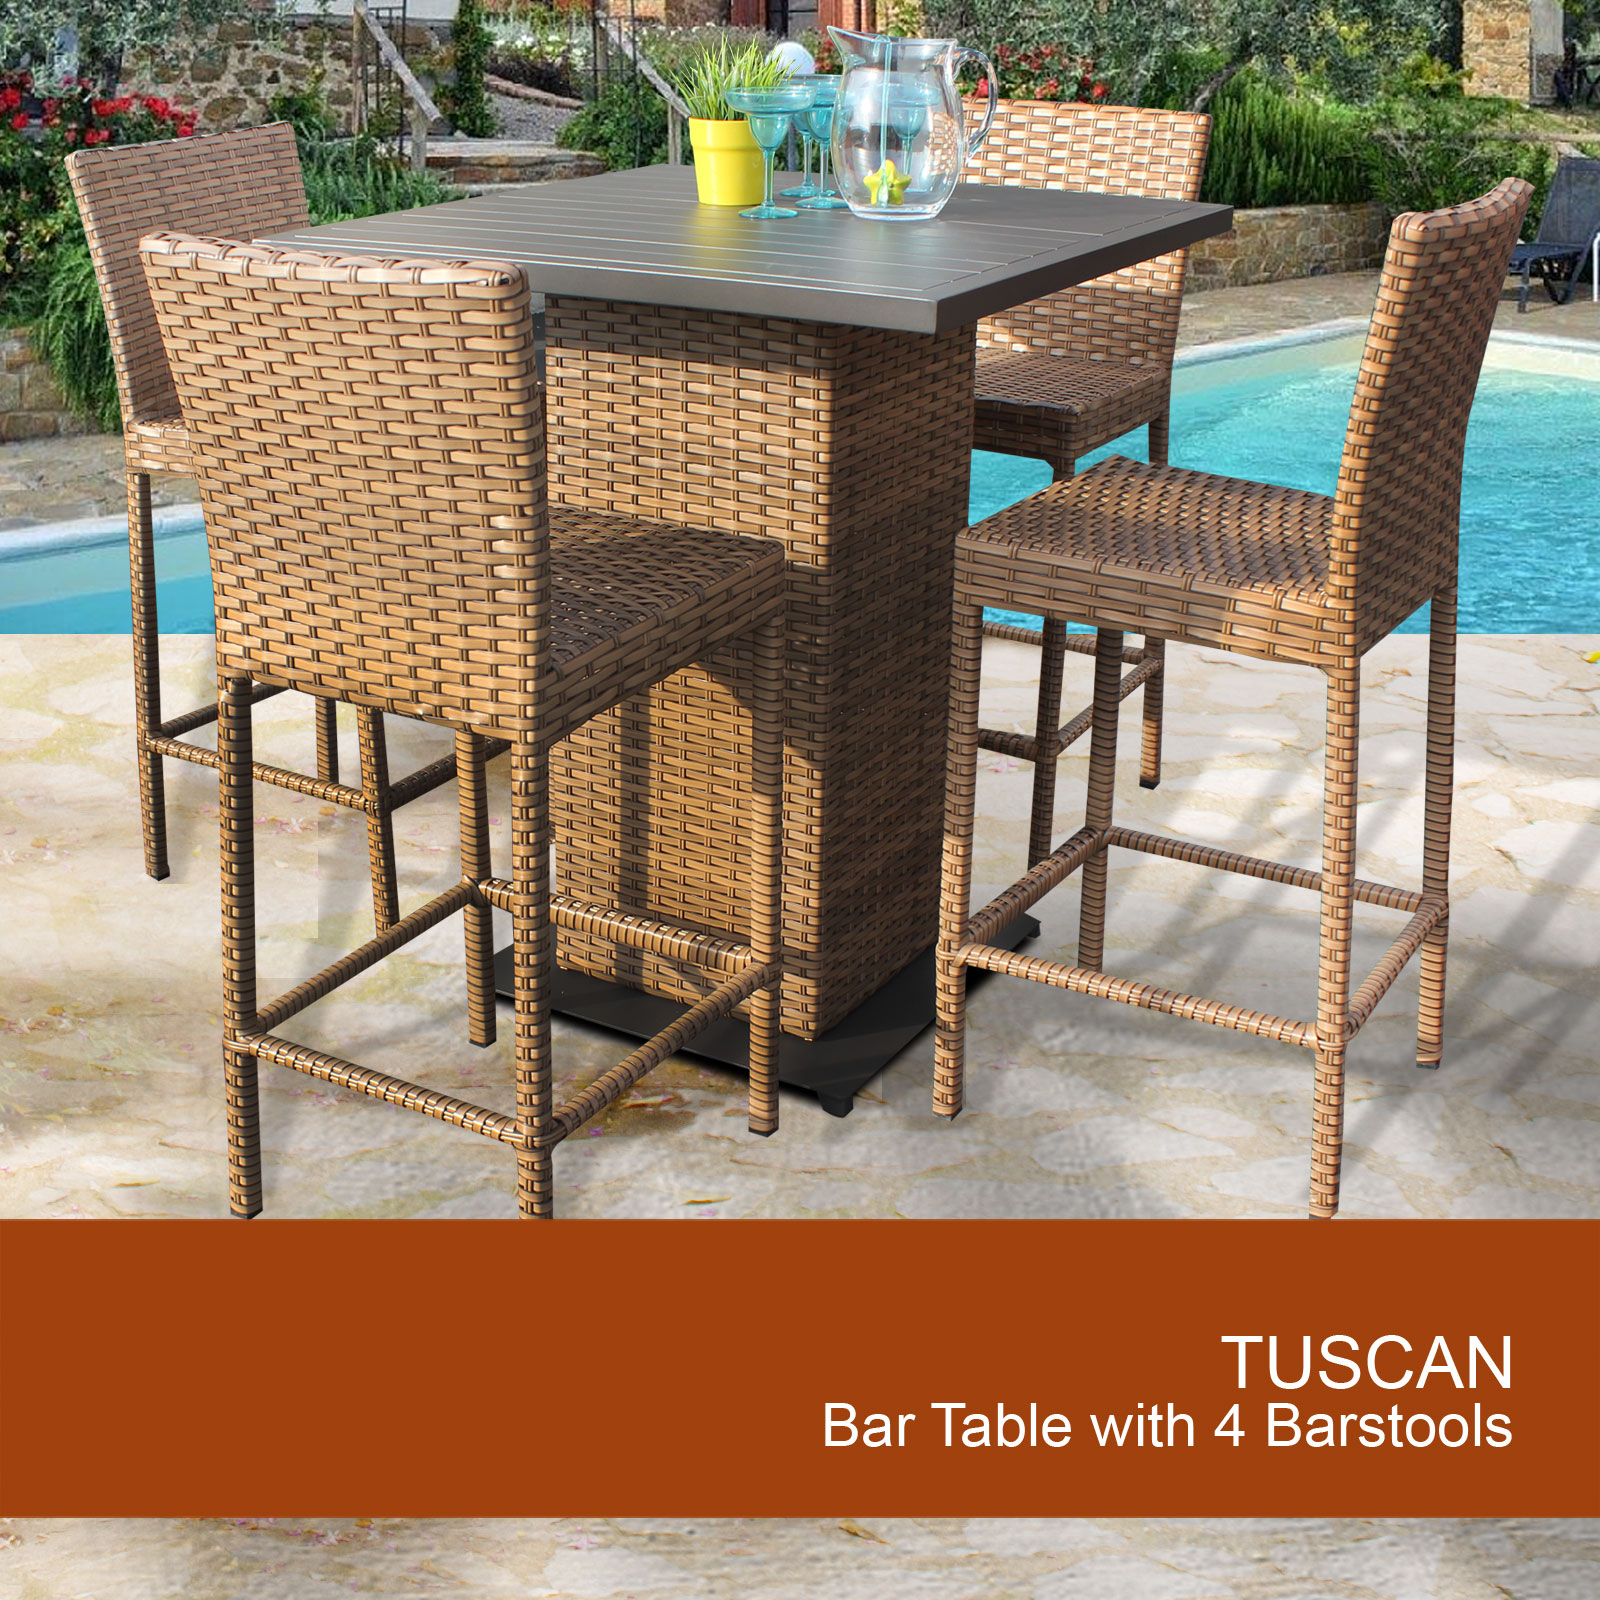 Exceptionnel Tuscan Pub Table Set With Barstools 5 Piece Outdoor Wicker Patio Furniture    Walmart.com